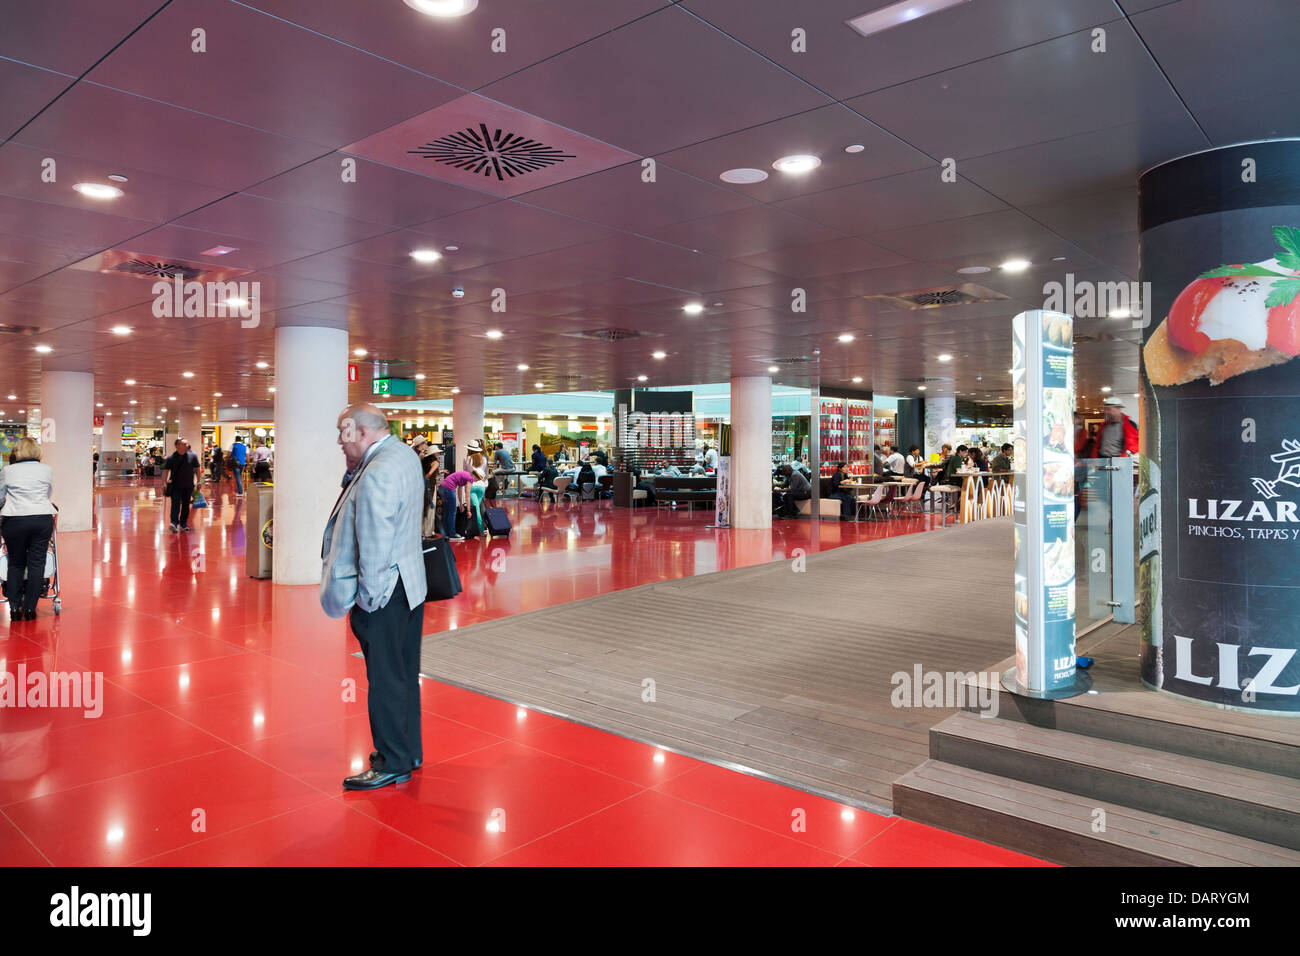 eating area at Barcelona Airport - Stock Image